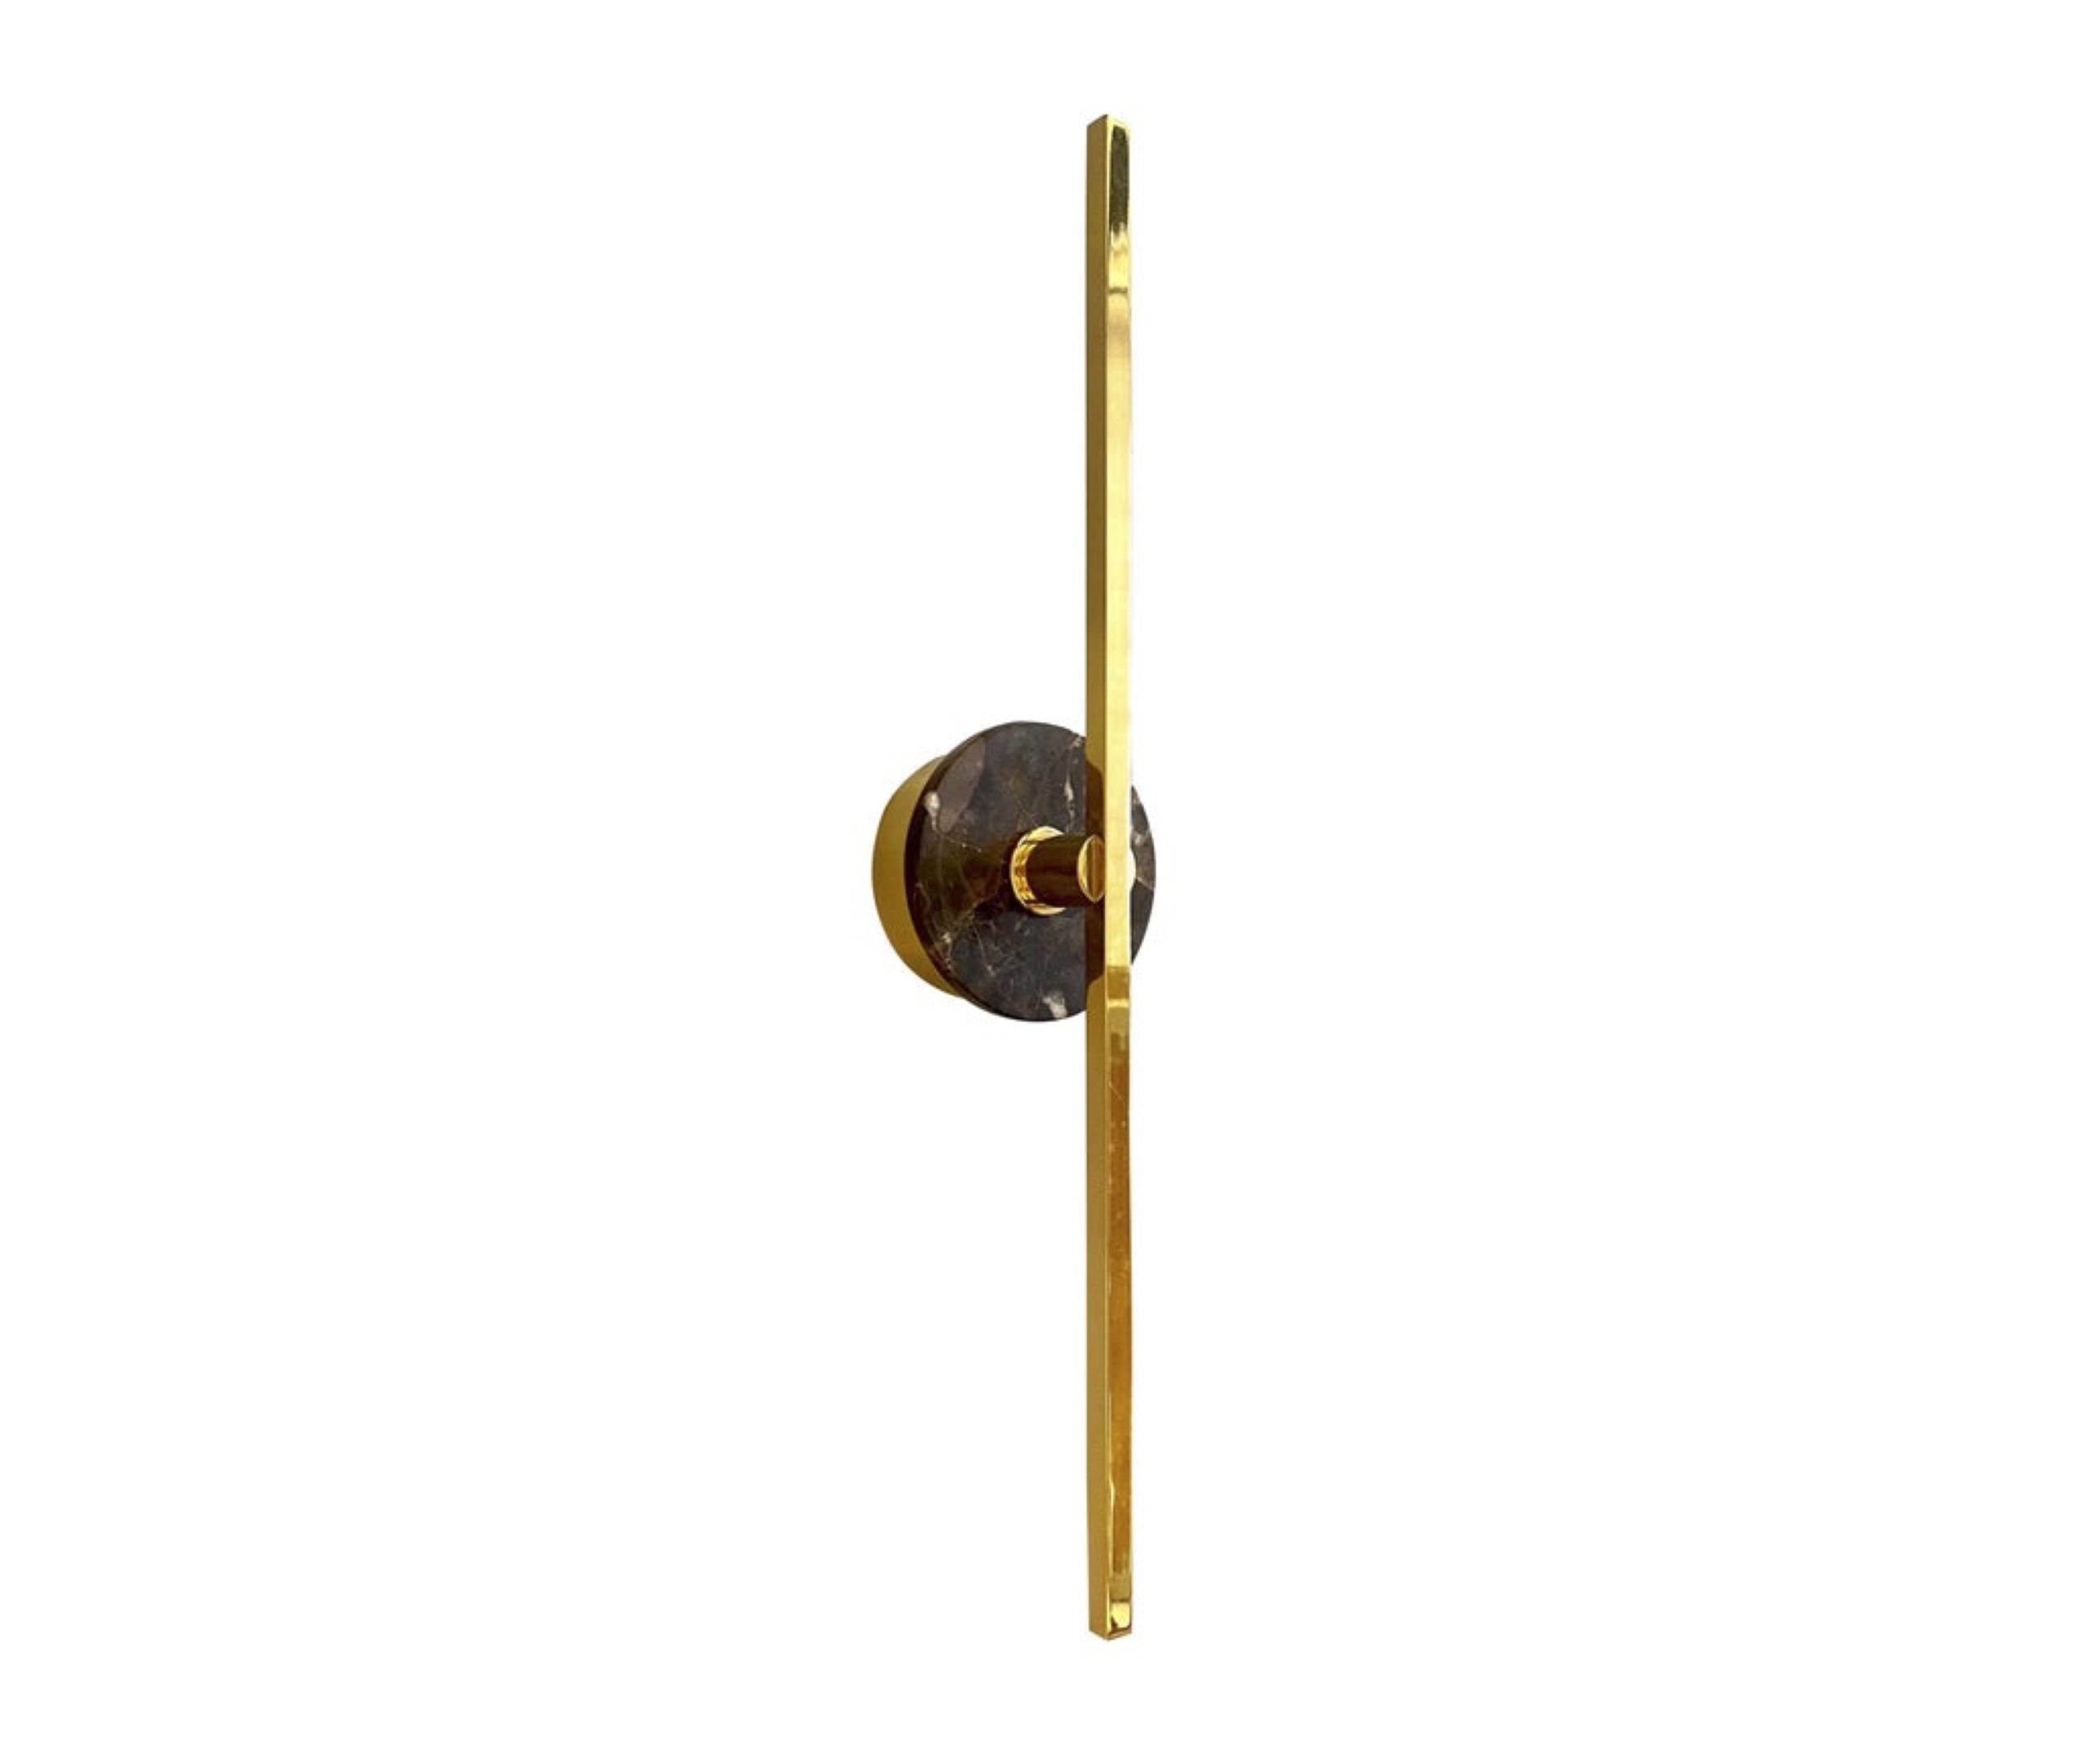 cosulich_interiors_and_antiques_products_new_york_design_bespoke_italian_minimalist_brown_marble_satin_brass_vertical_horizontal_sconce-scaled-1